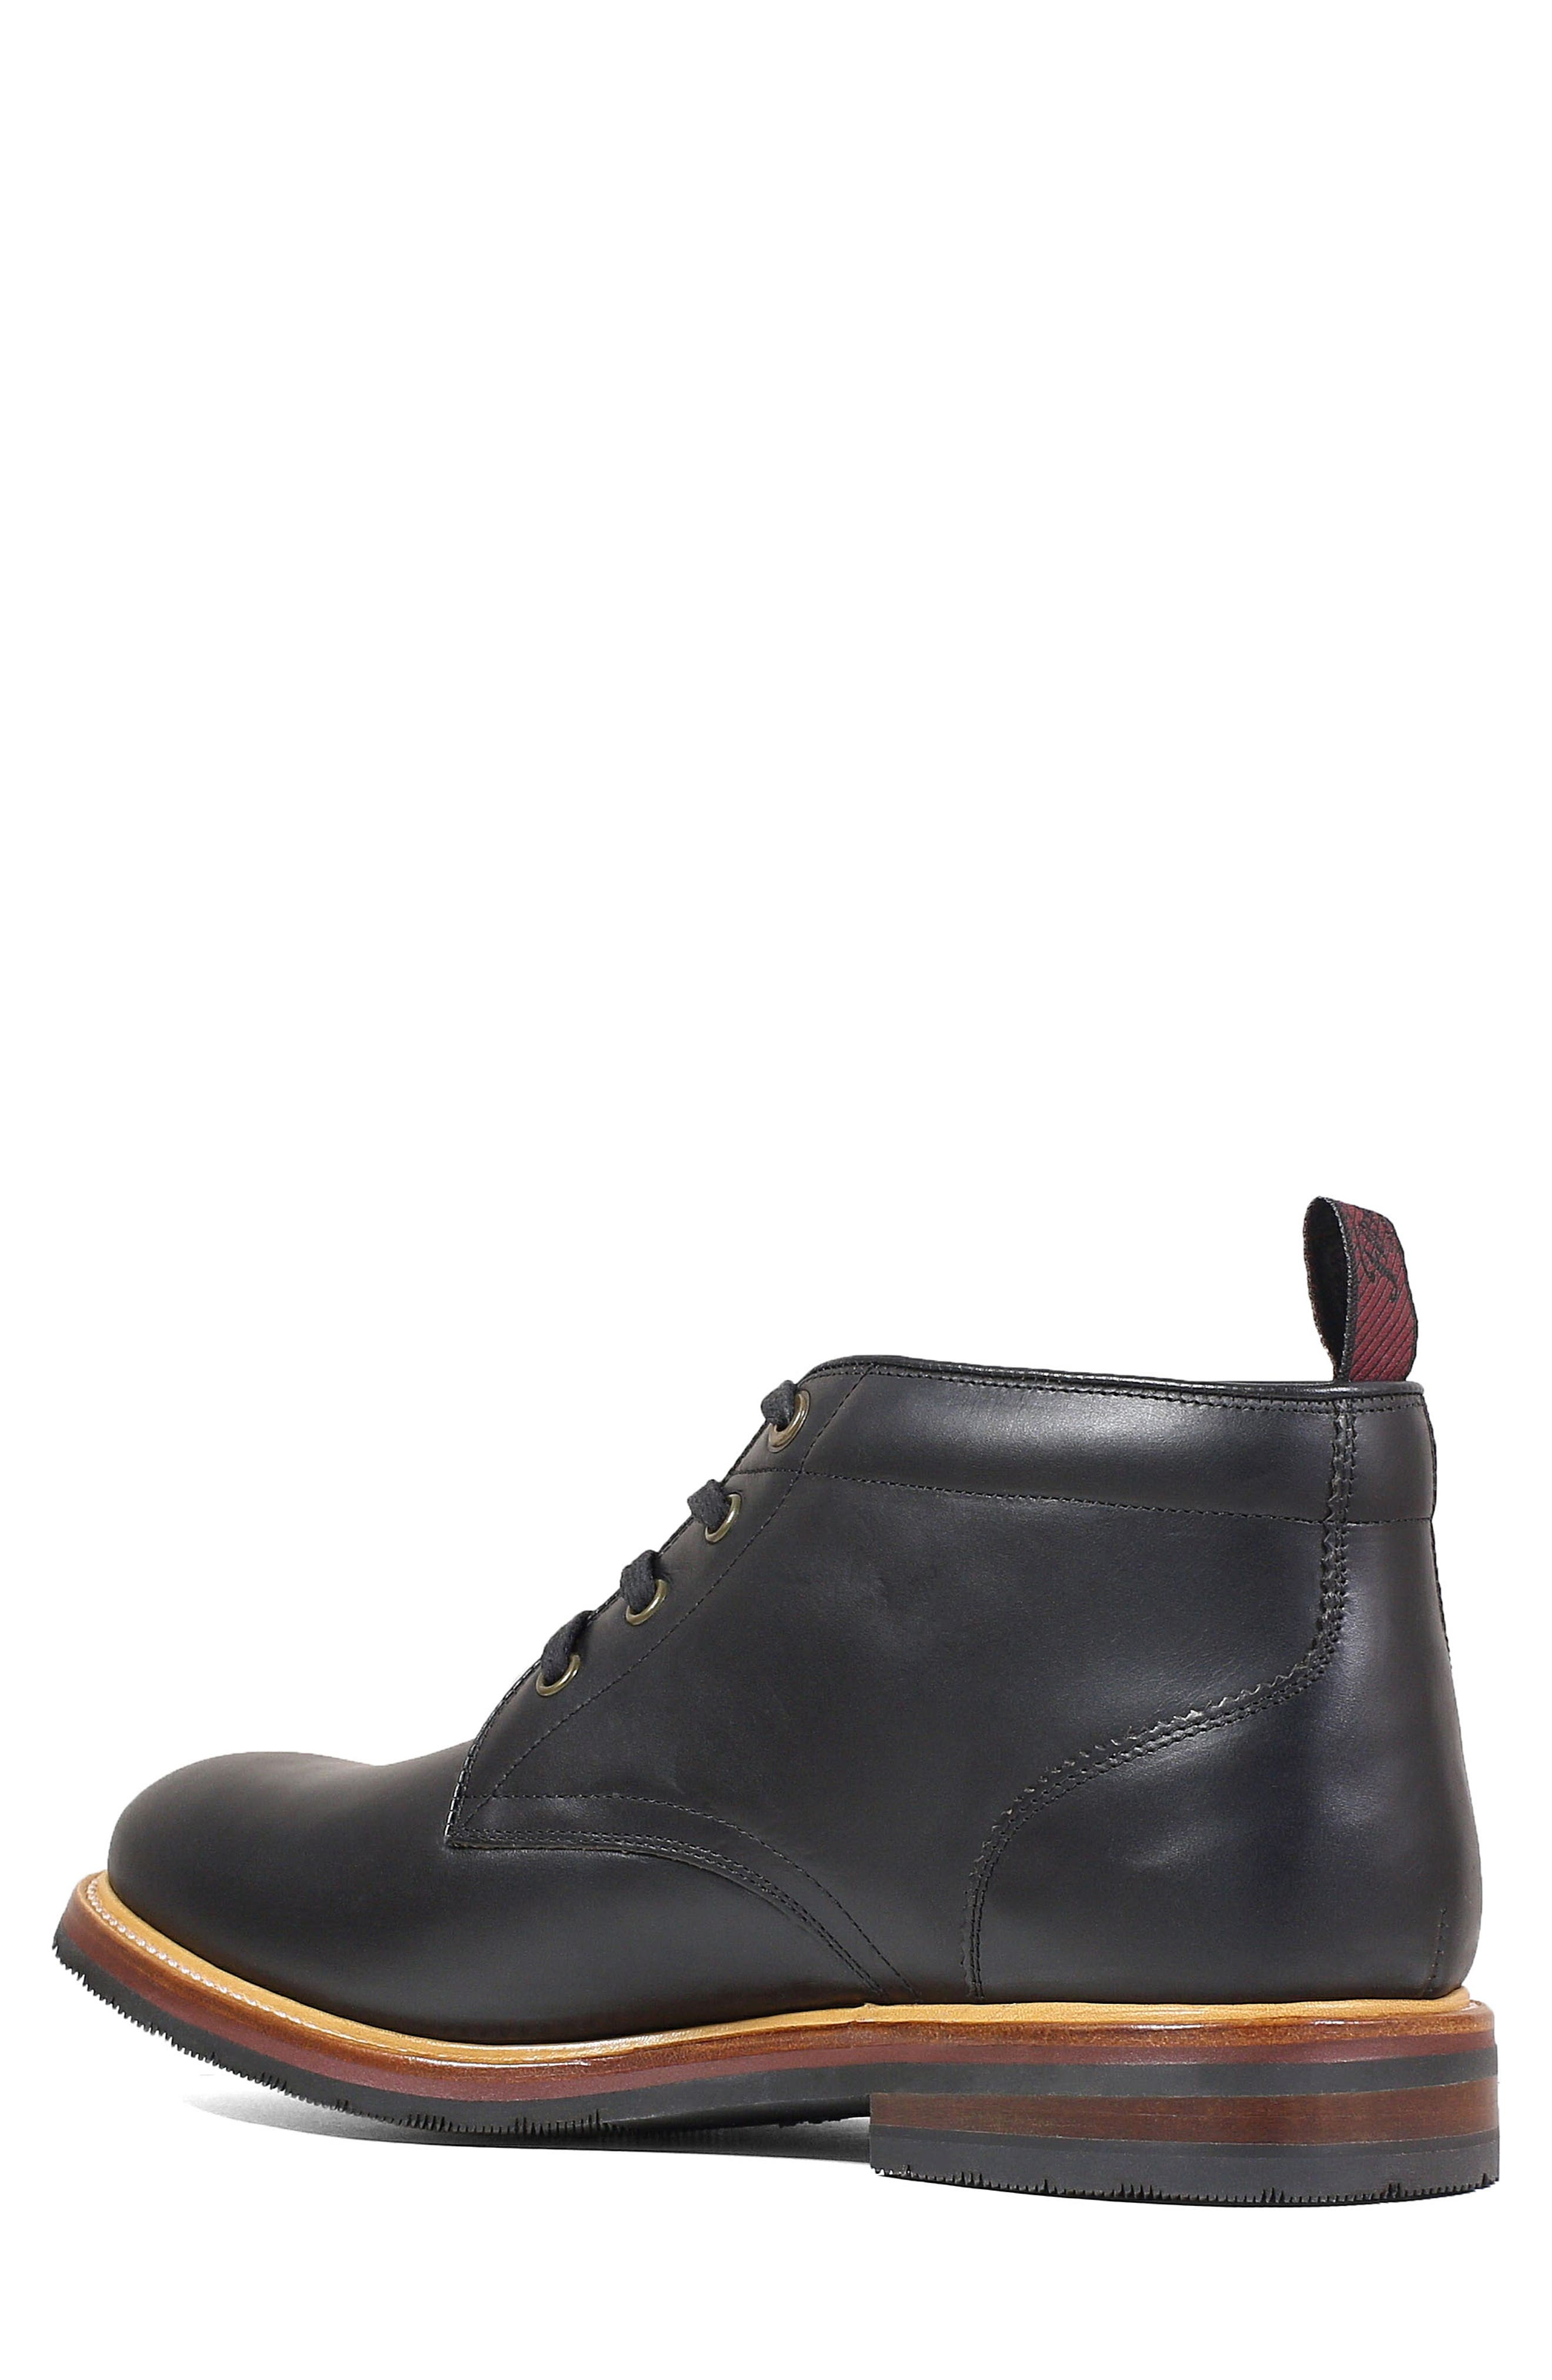 FLORSHEIM, Foundry Leather Boot, Alternate thumbnail 2, color, BLACK LEATHER